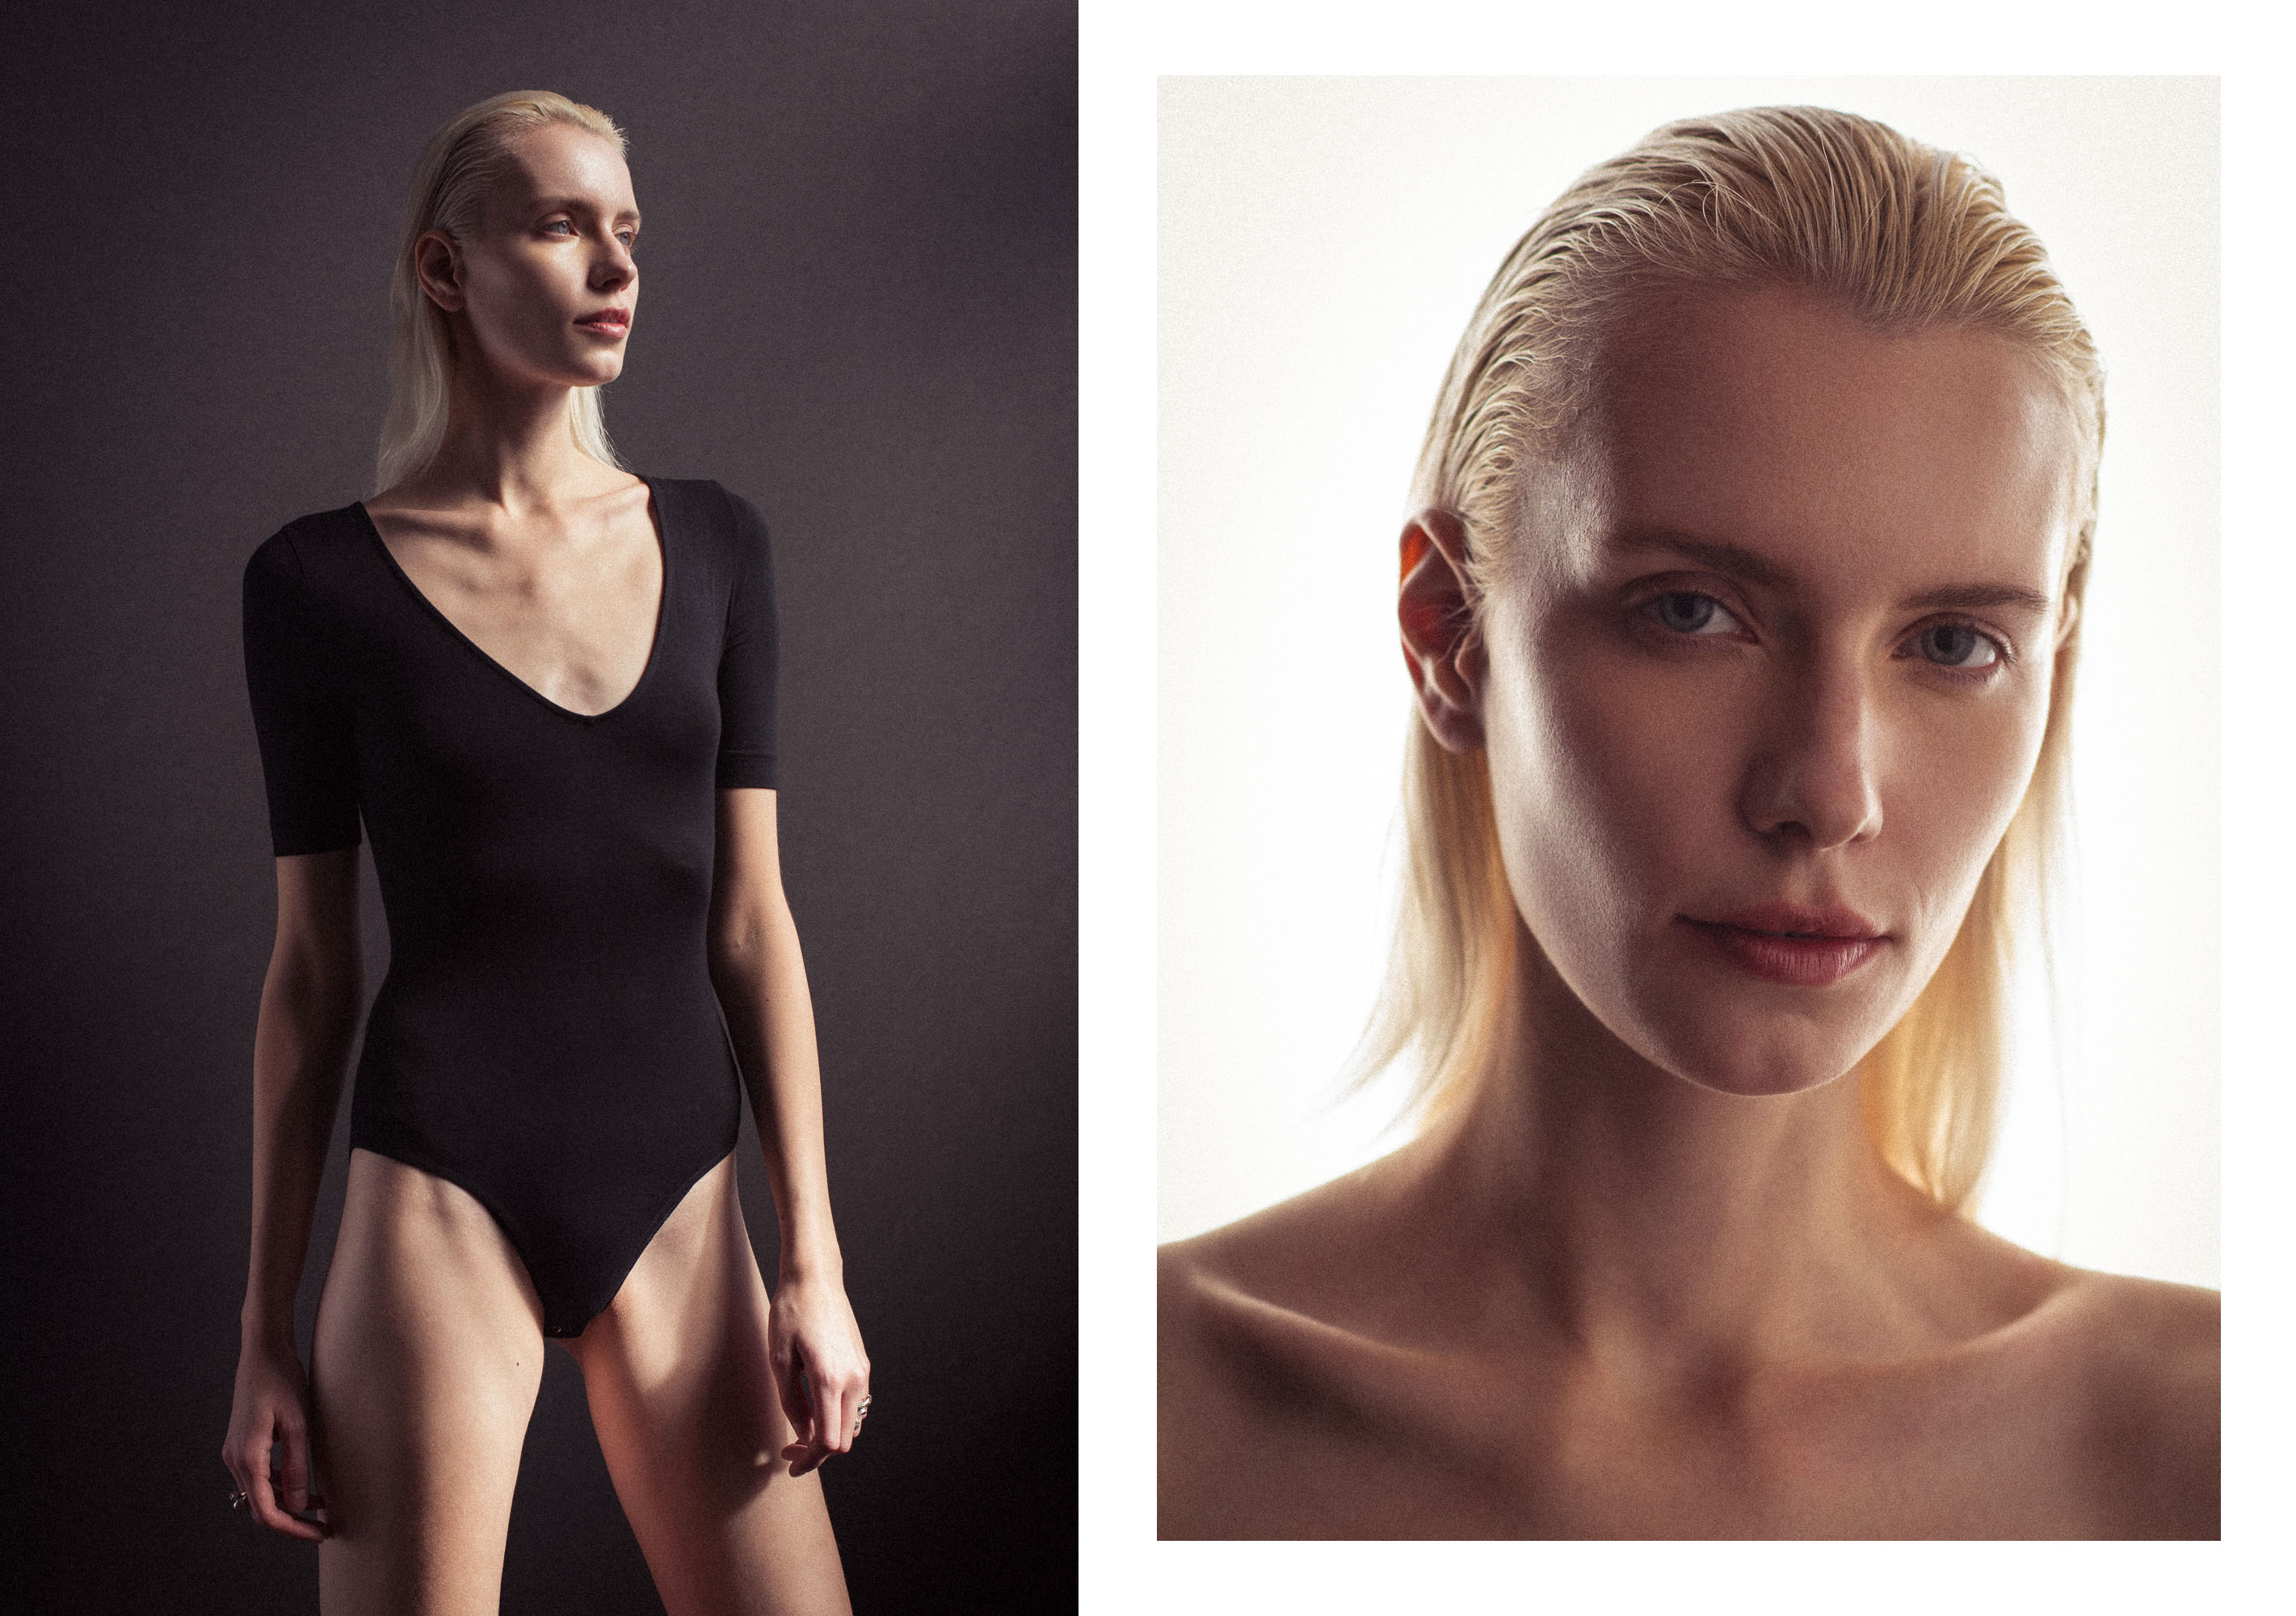 Anna for EMG Models - Geoffrey Badner Photography